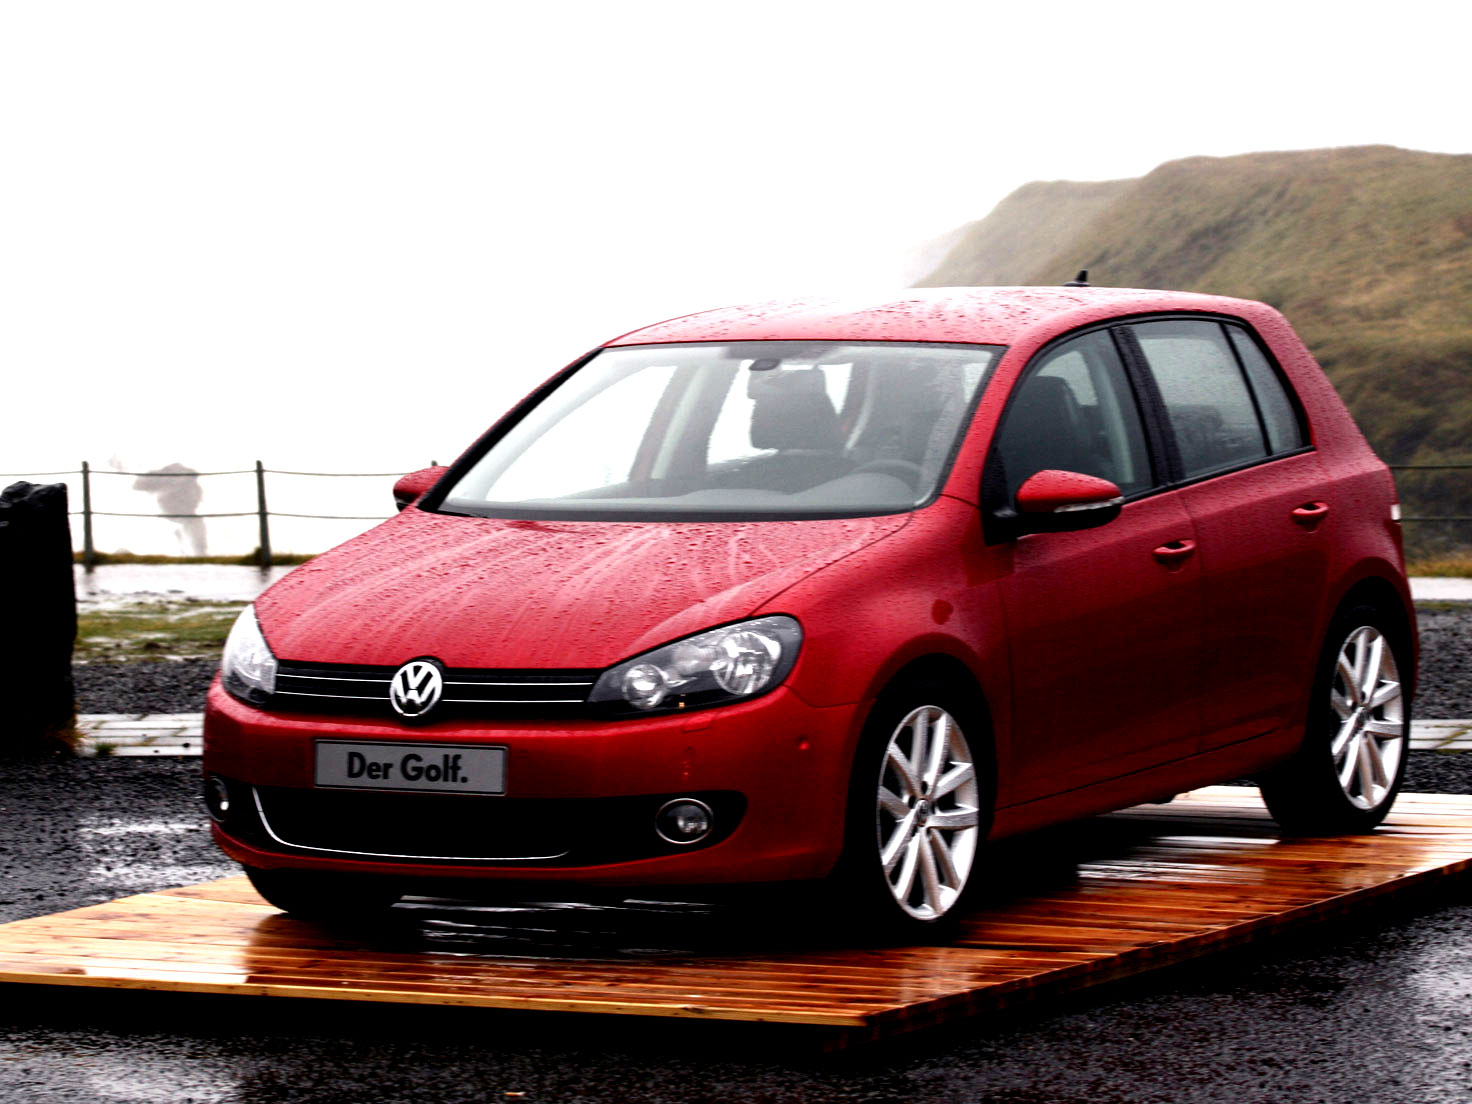 vw golf 6 tdi test n islanda. Black Bedroom Furniture Sets. Home Design Ideas